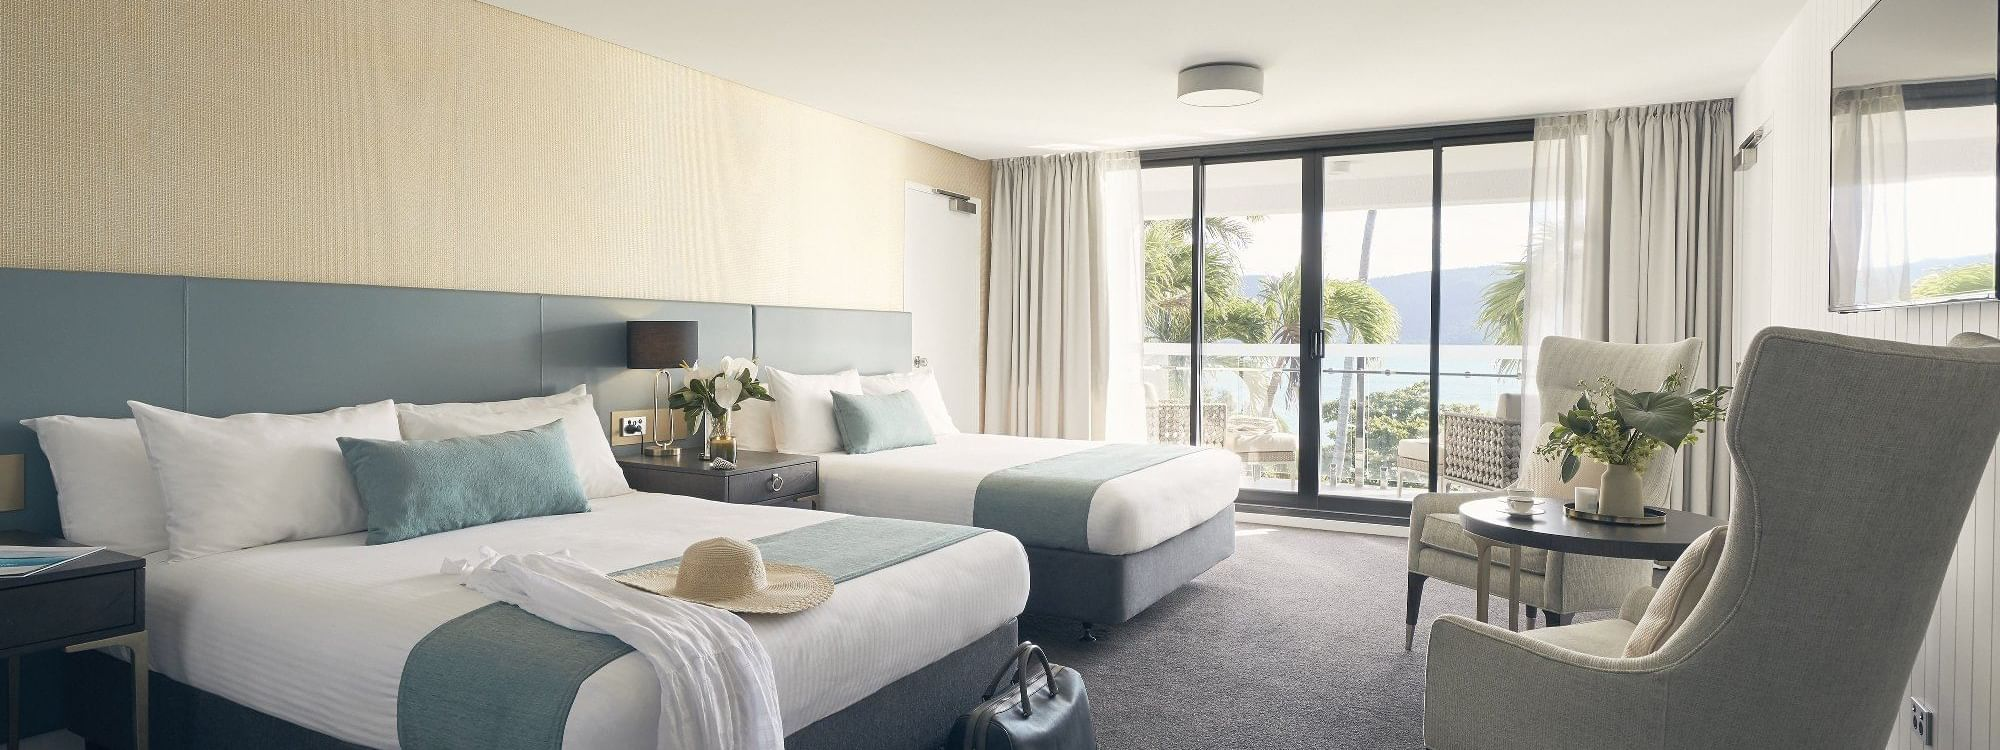 Two beds in Deluxe Serenity Twin room at Daydream Island Resort